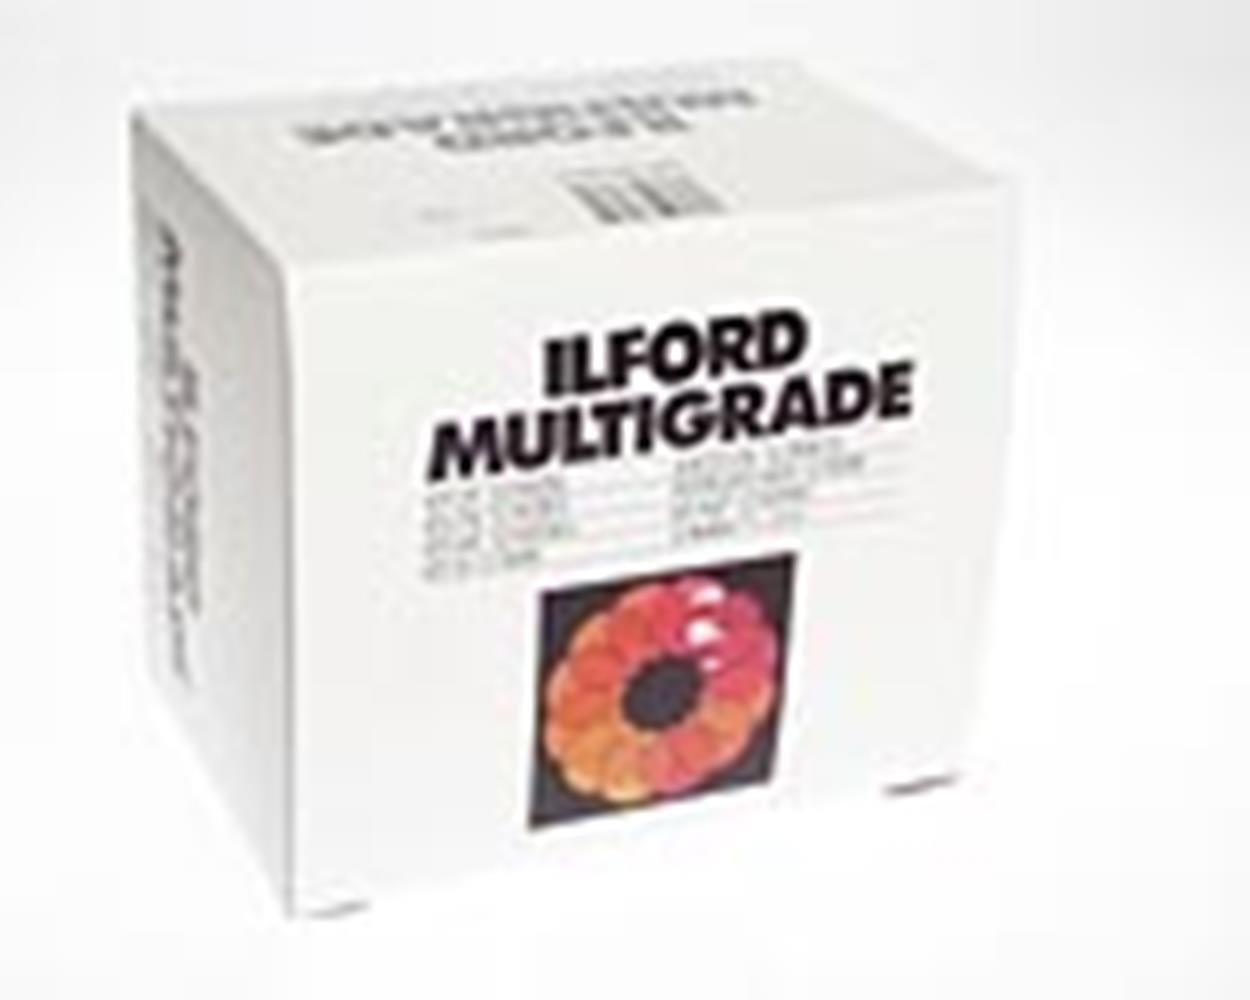 ILFORD MG FILTER SET, MOUNTED    762617